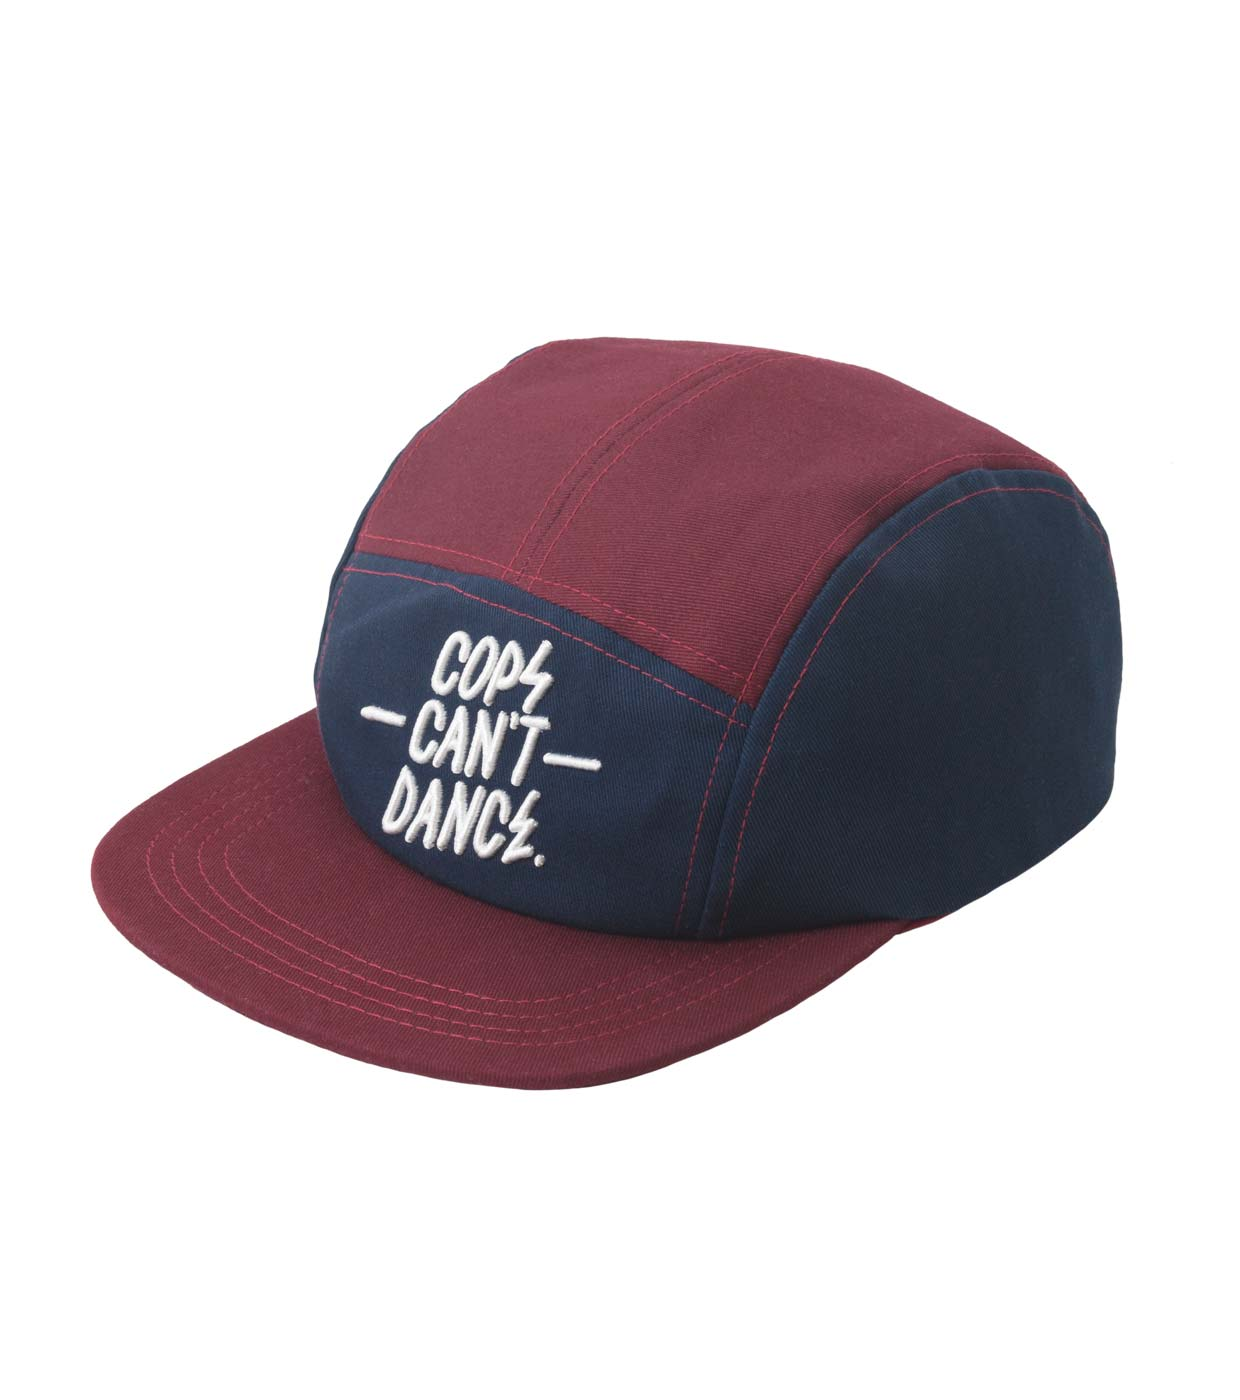 Mr. Serious Cops can t dance cap maroon red  blue - 5 panel snapback cap  made of cotton aafb0ebea58